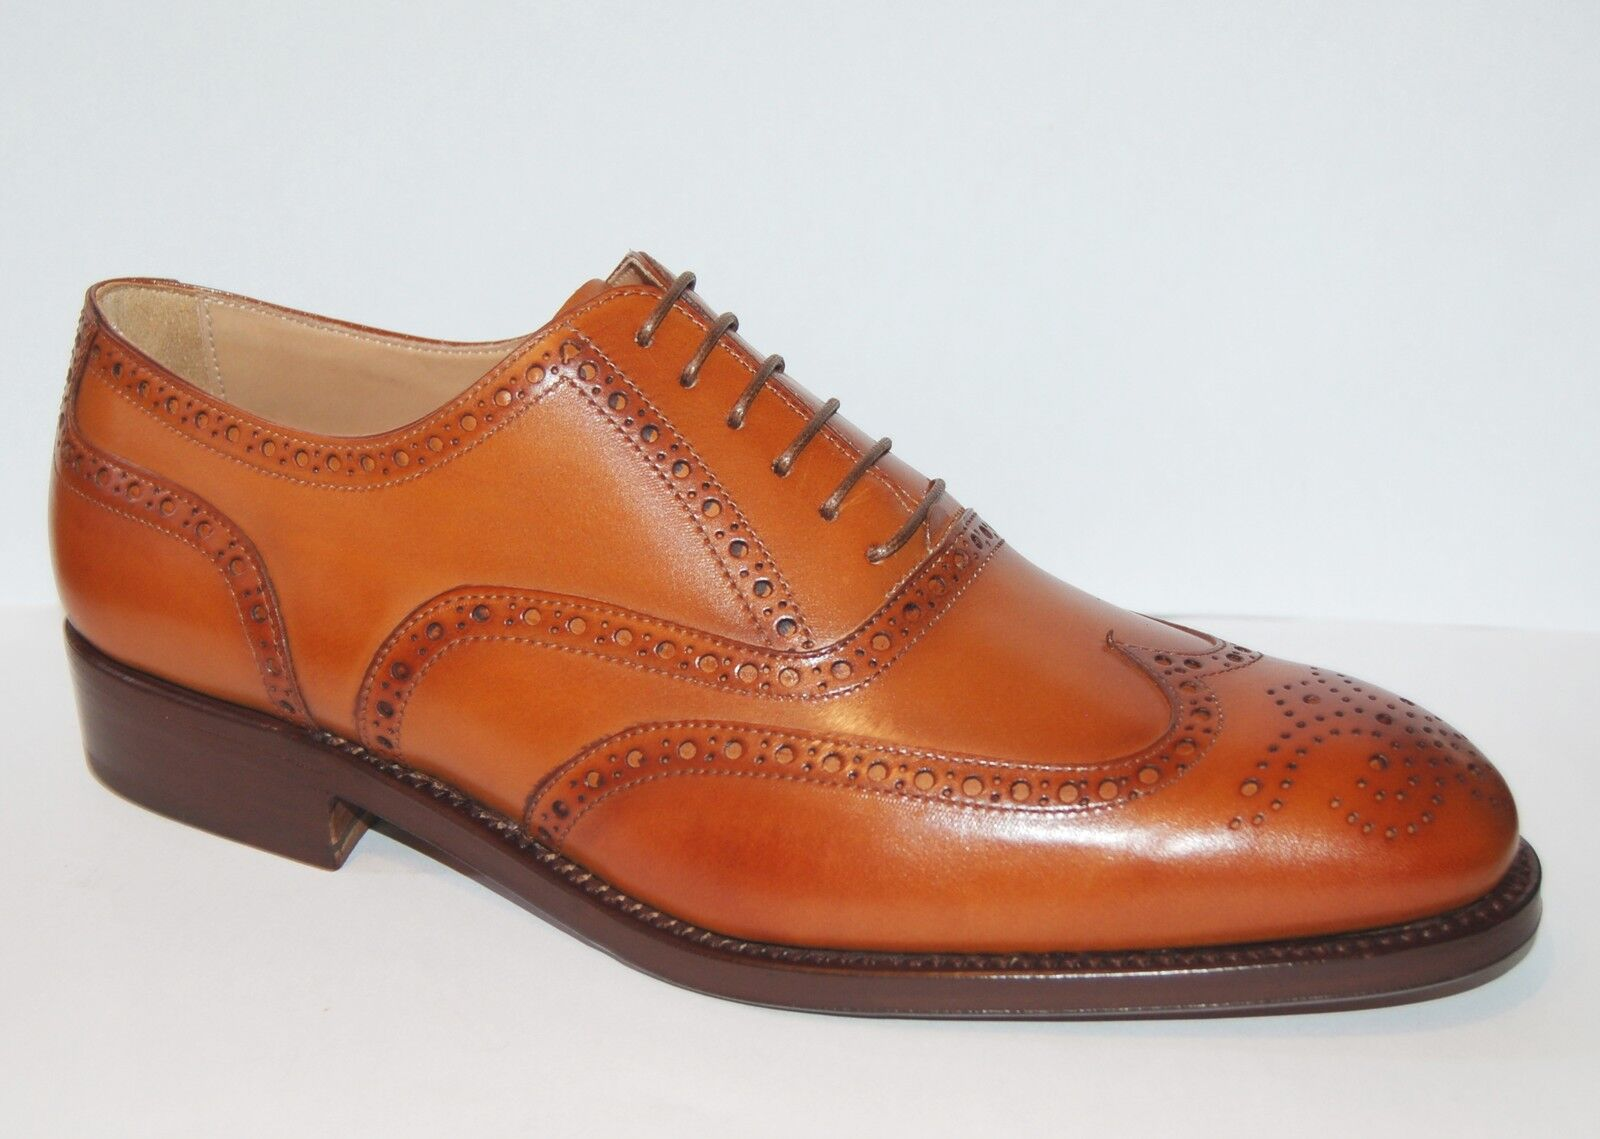 MAN OXFORD WINGTIP - ANTIQUED TAN BOMBAY CALF - - - PERFS&MEDALLION - LTH SOLE RAPID 3d752c